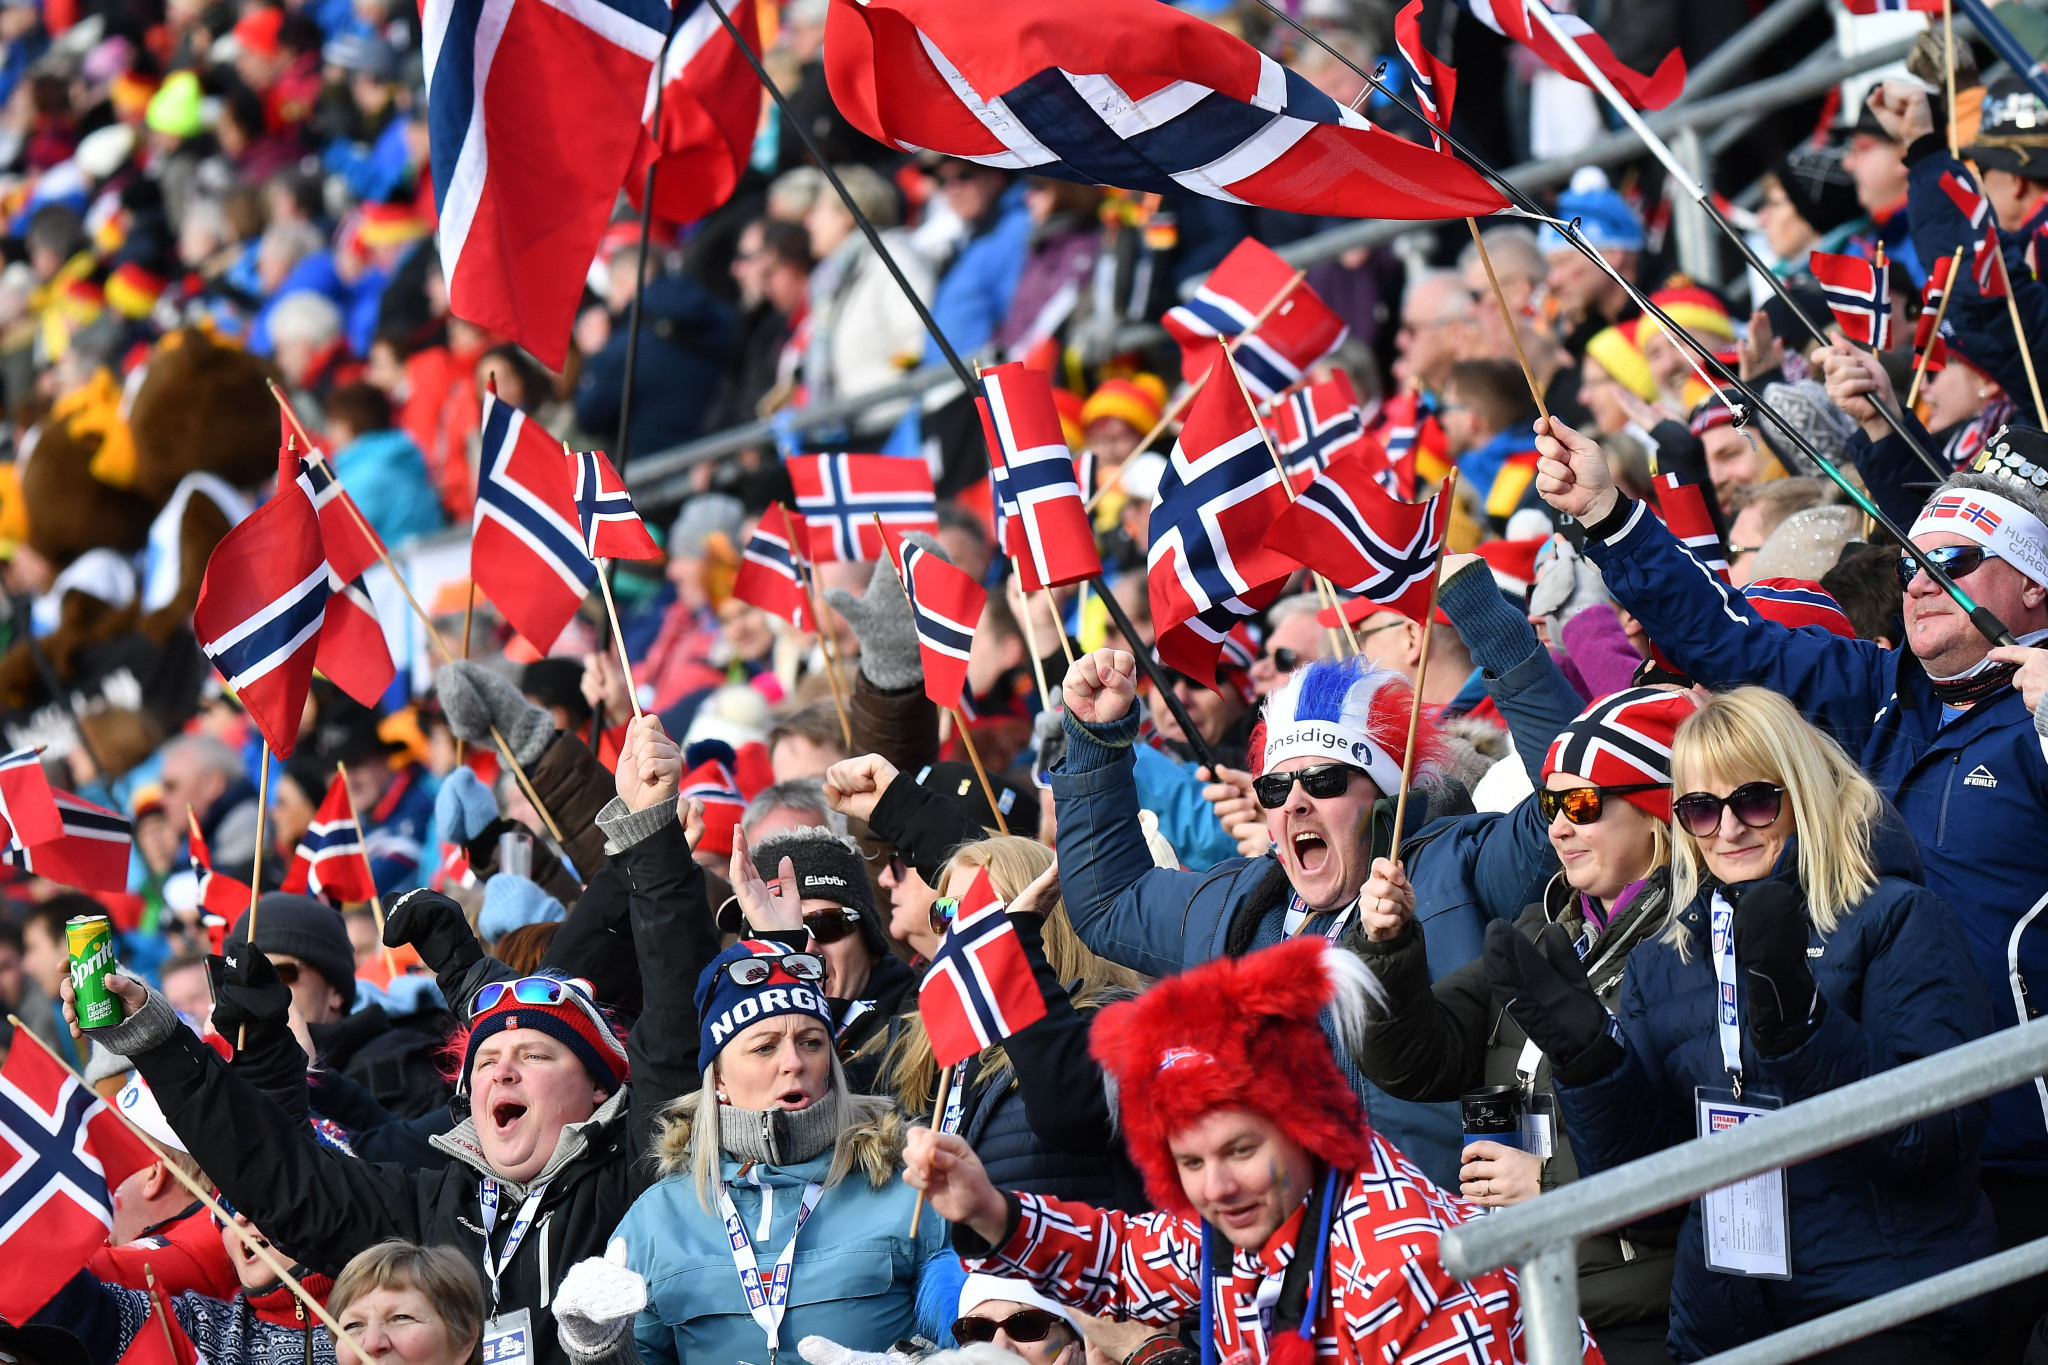 Norwegian Ski Association signs major television deal for home events